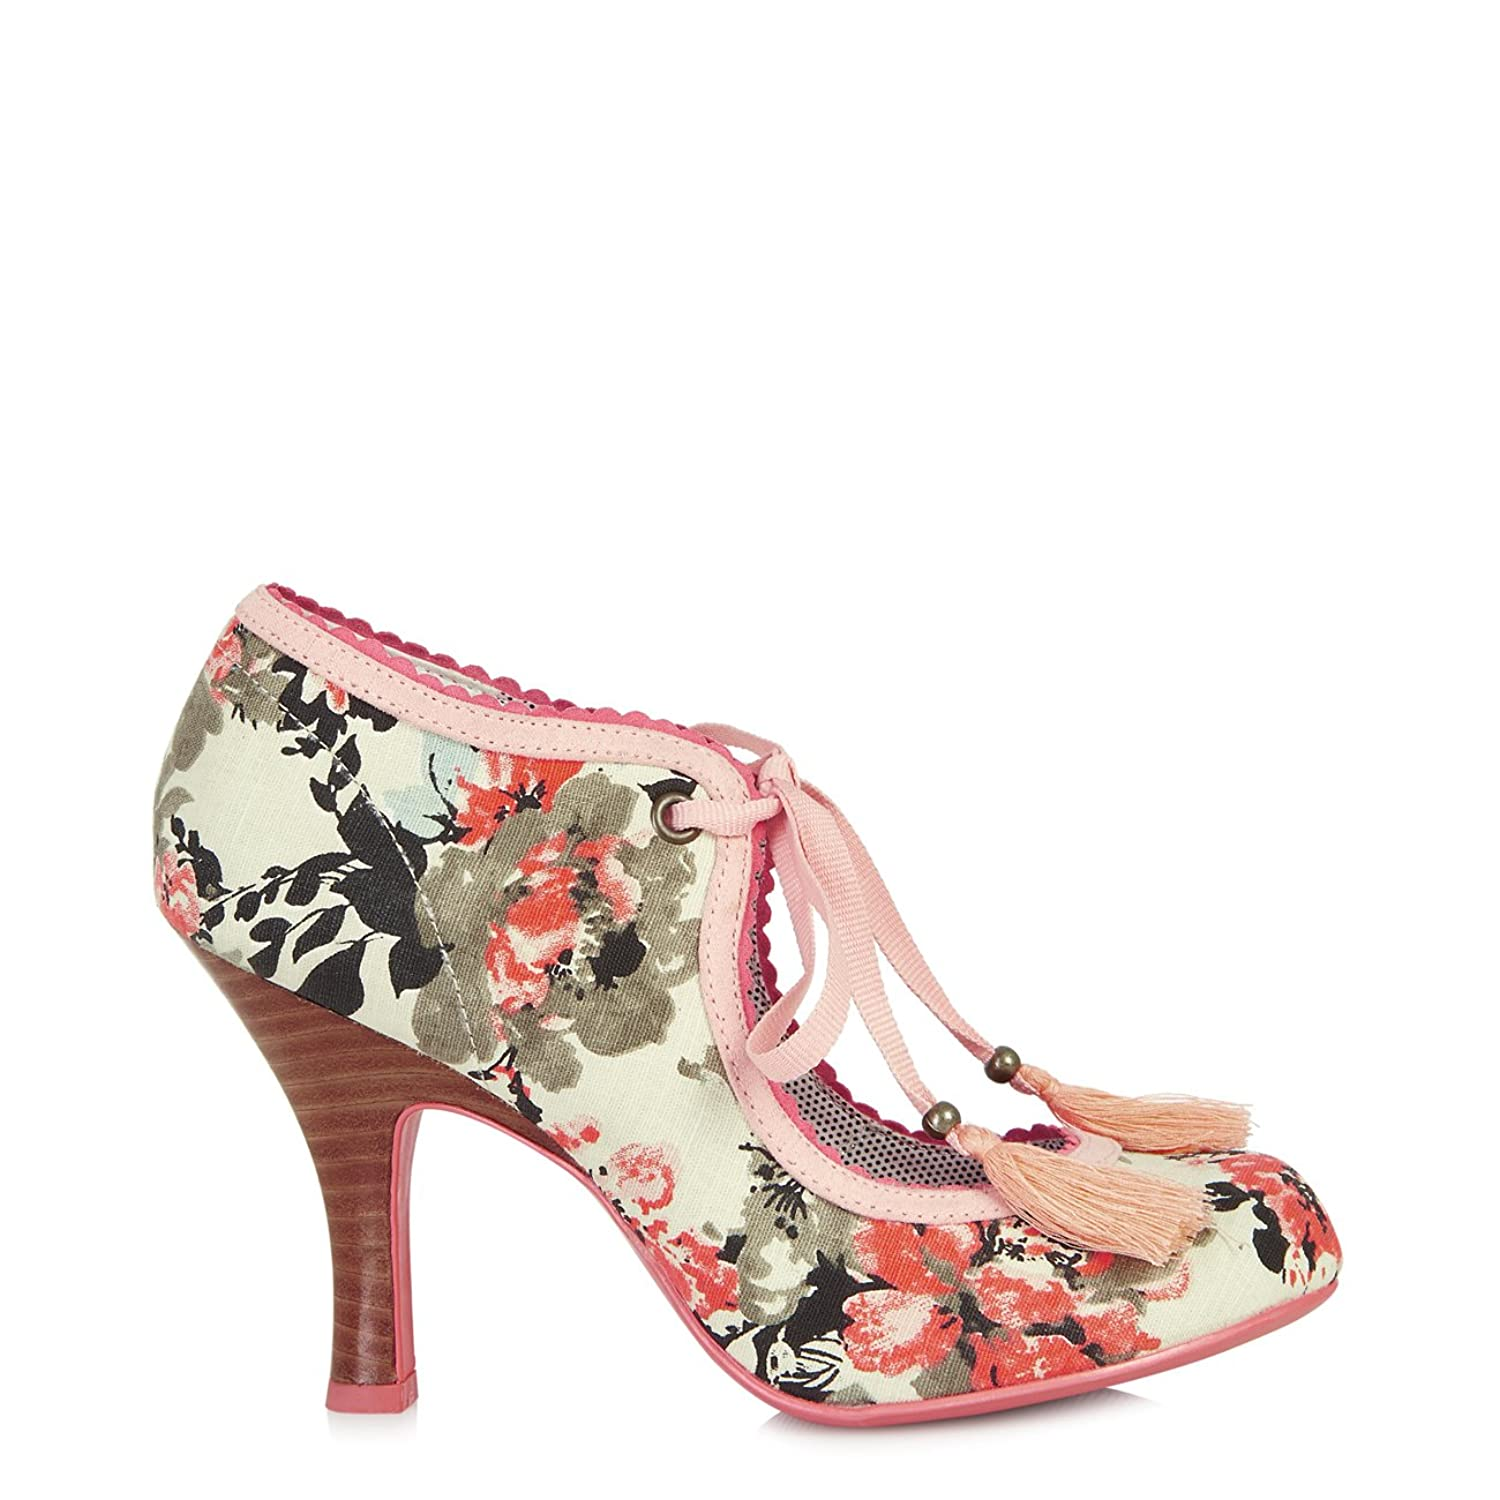 Ruby Shoo Women's Willow Fabric Bootie Pumps & Free Belle Divino Sole  Protector: Amazon.co.uk: Shoes & Bags